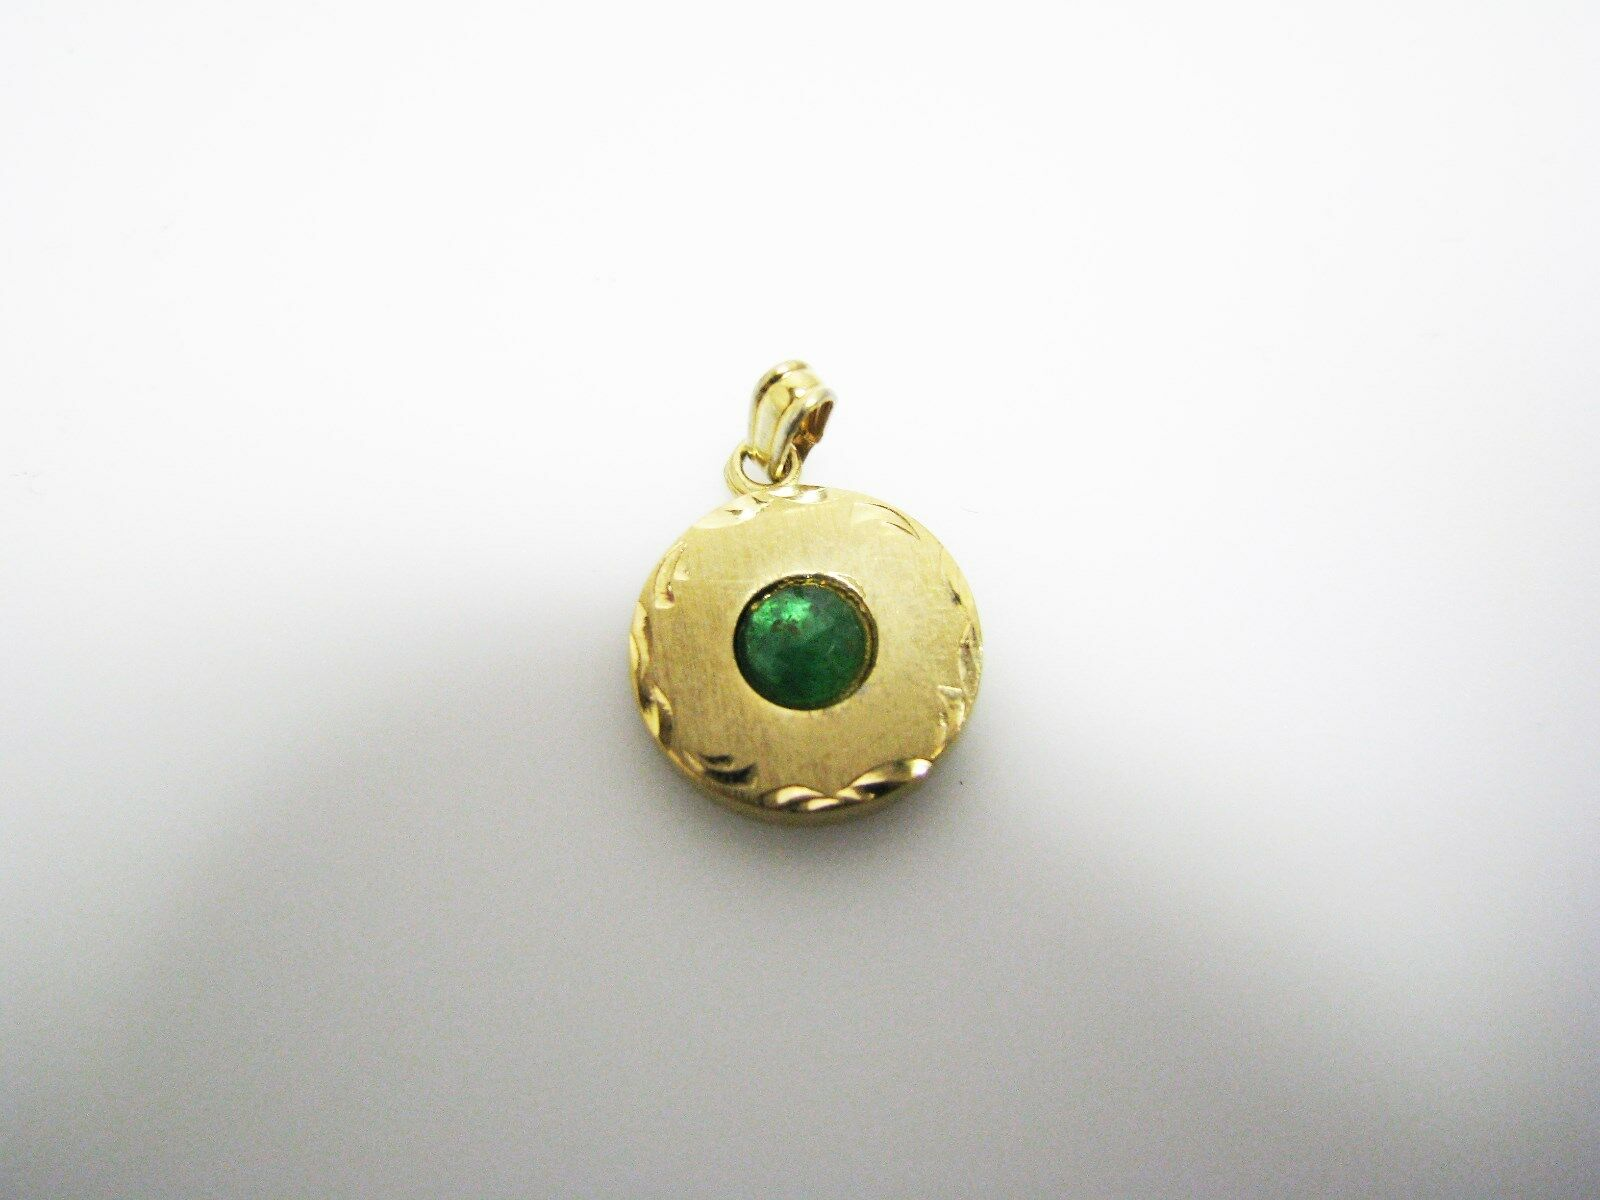 C835 Vintage LaMode Pendant   Charm with Green Stone in 12k gold Filled